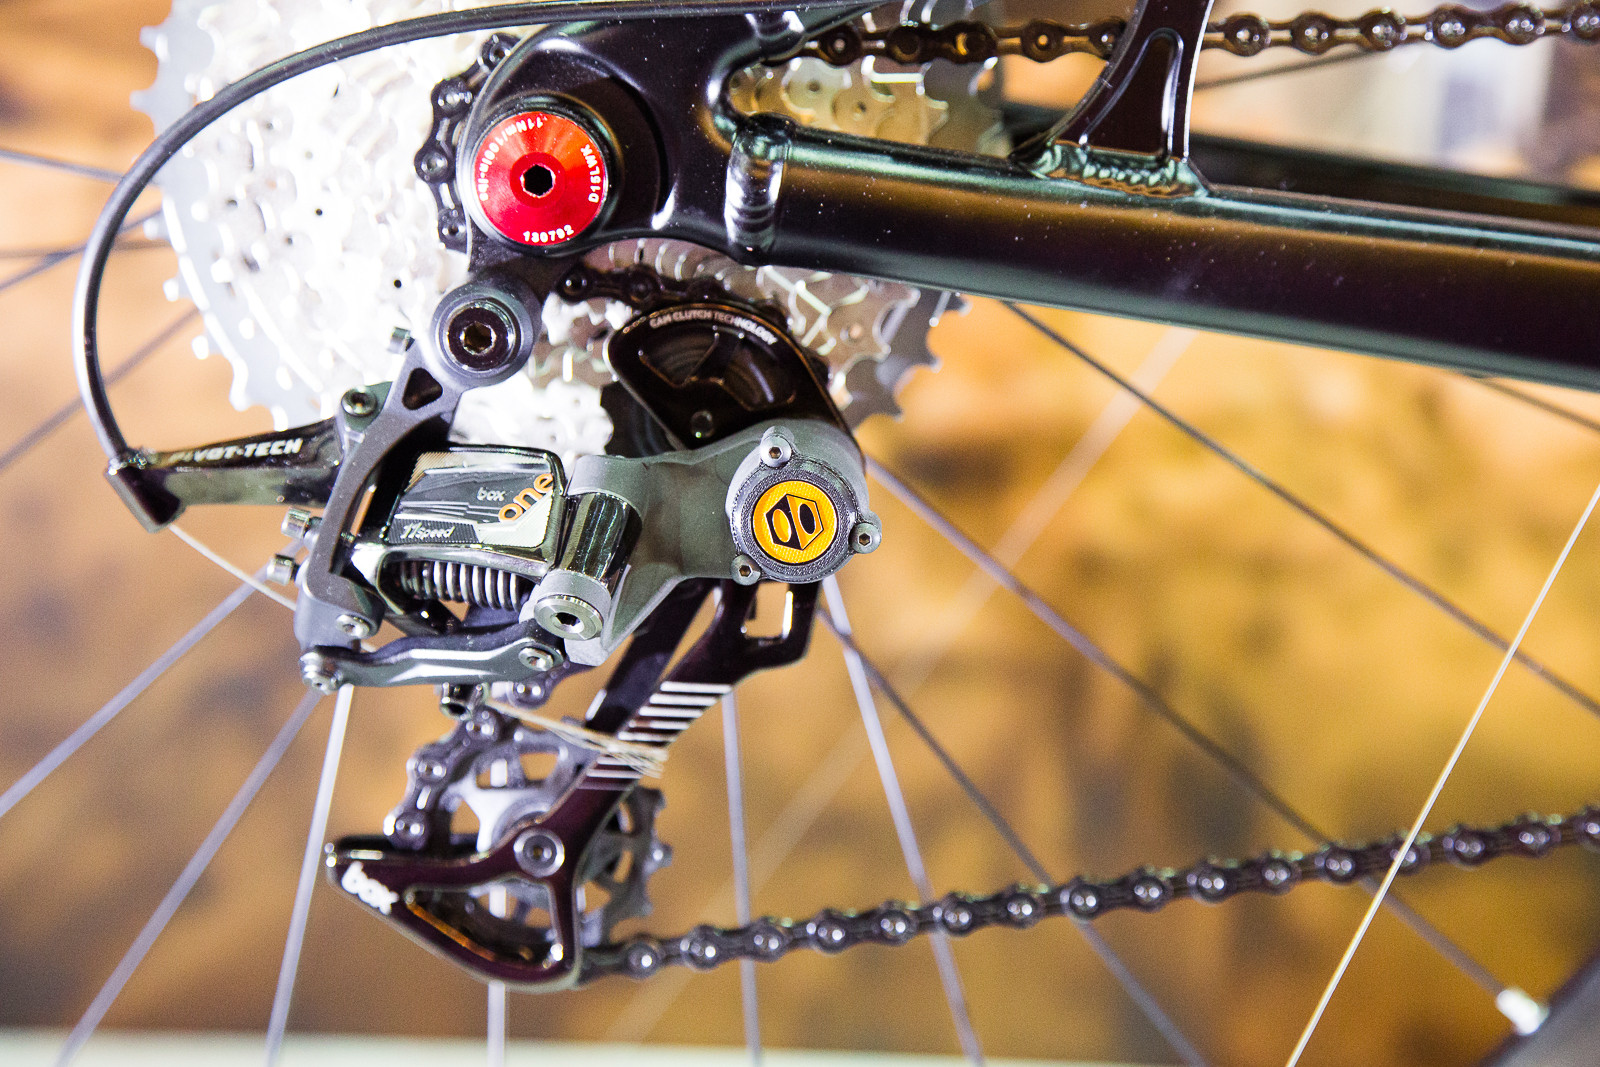 Box Components Rear Derailleur, Shifter and Brakes - 2016 Taipei Bike Show - Mountain Biking Pictures - Vital MTB